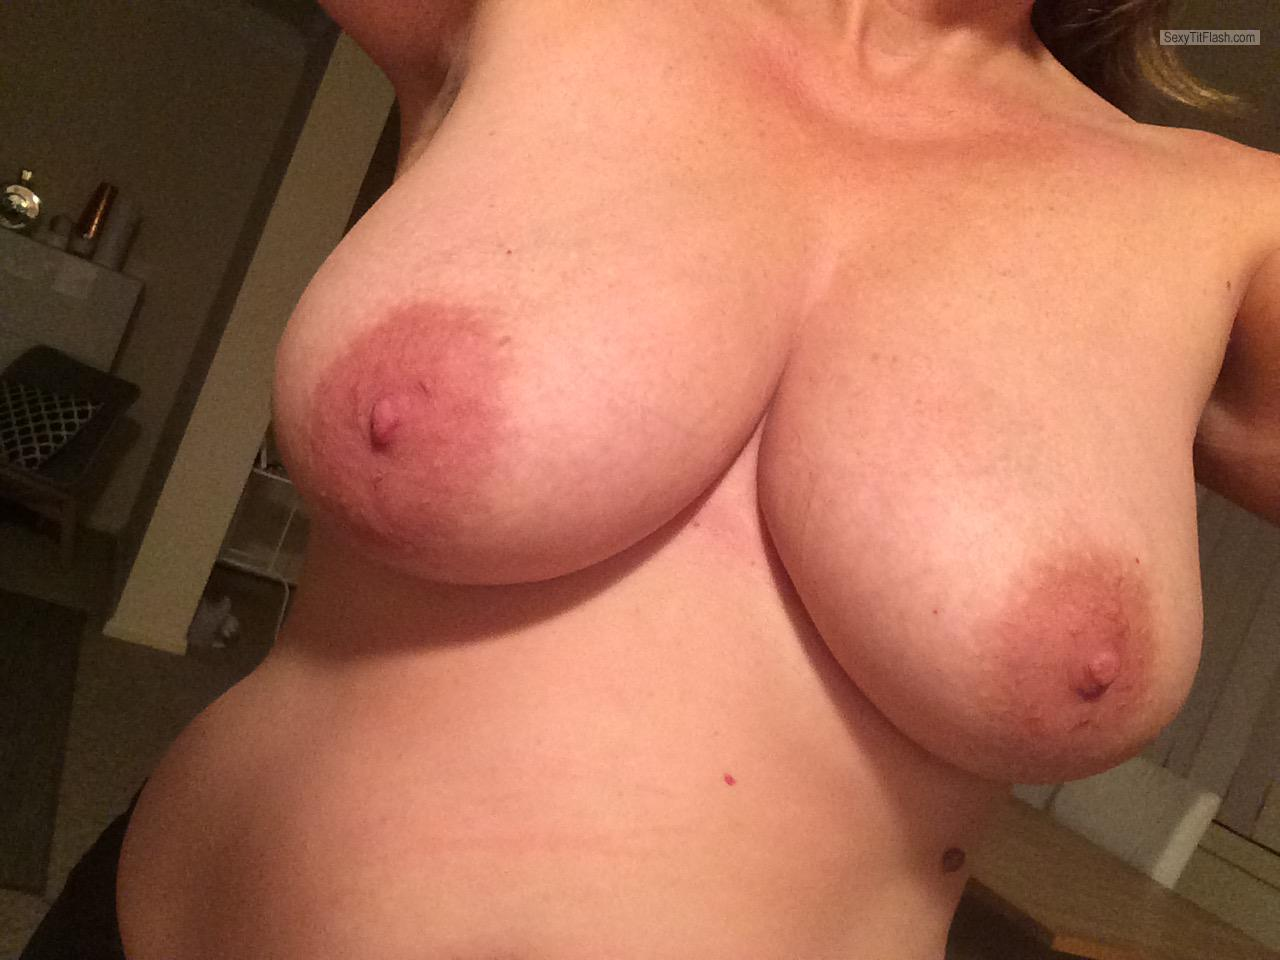 Tit Flash: My Big Tits (Selfie) - 48 Year Old Tits from New Zealand